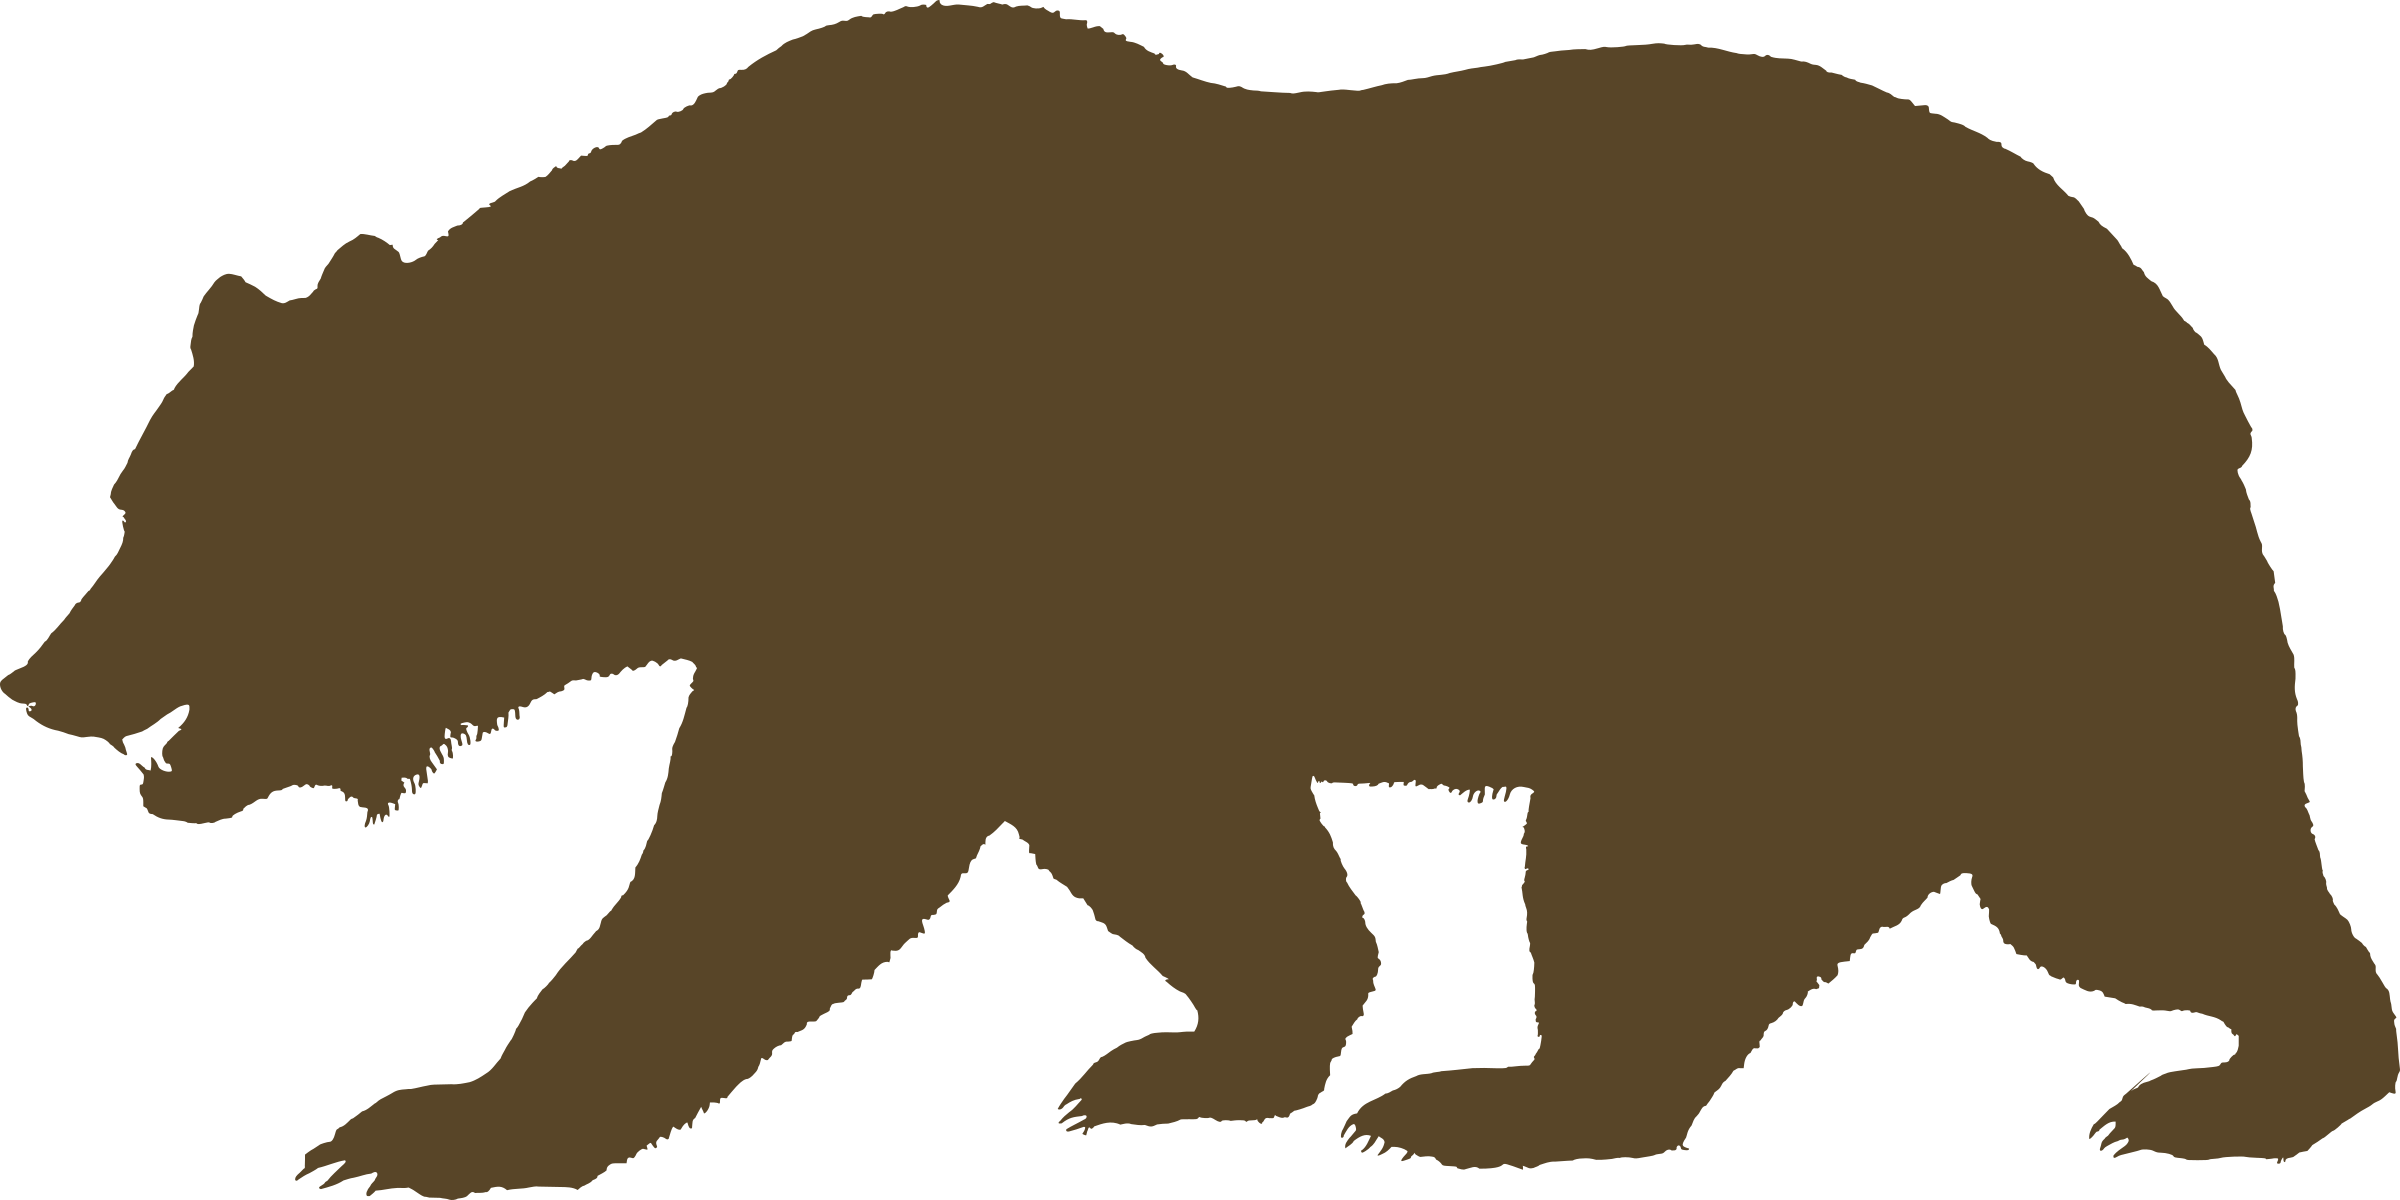 Bear outline png. Flag of california solid